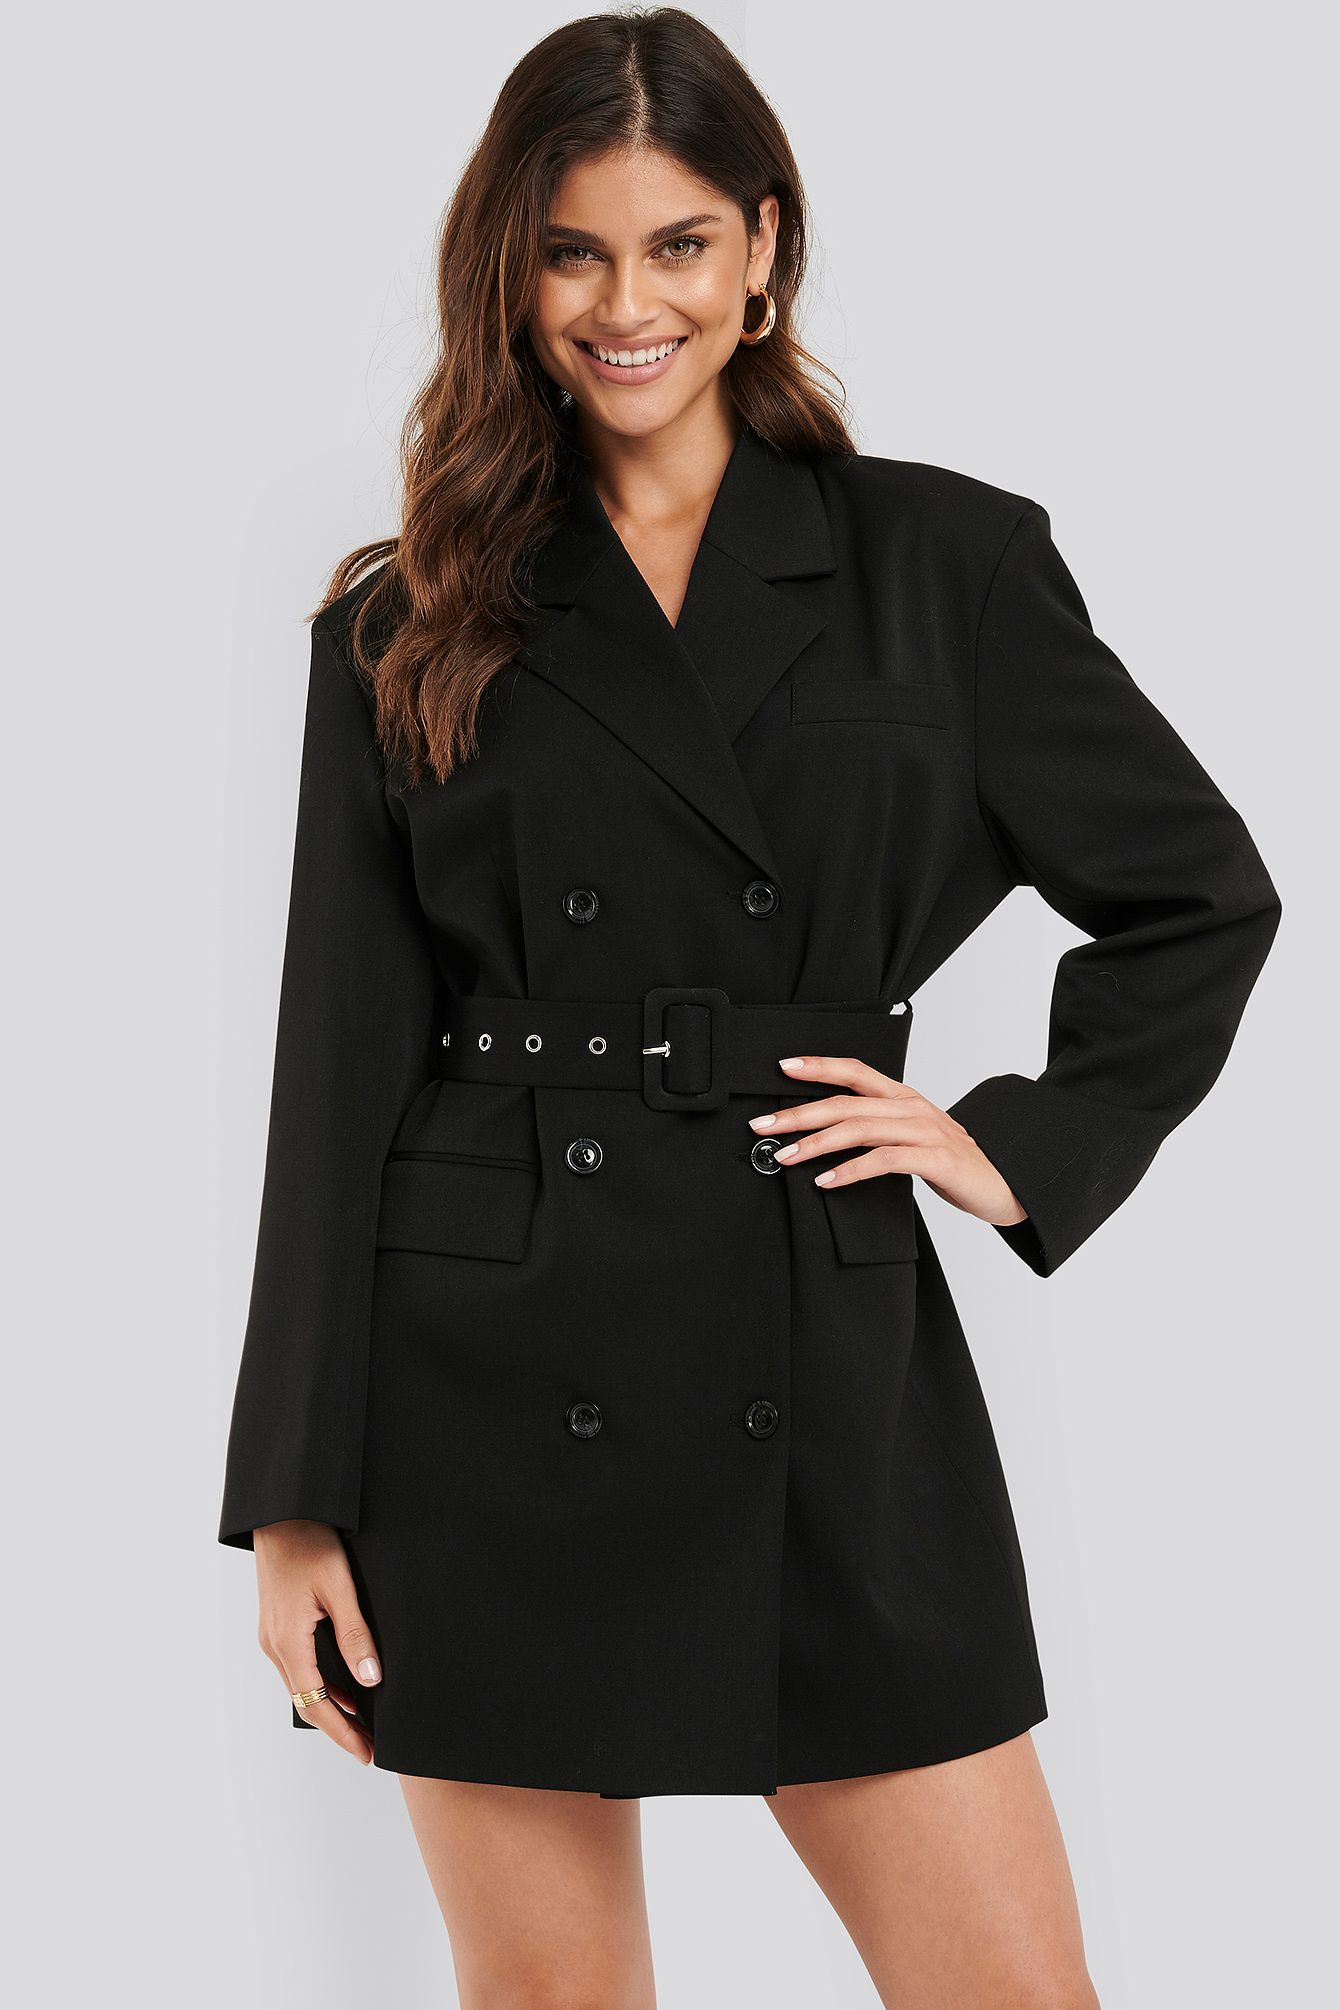 Black Wide Shoulder Belted Blazer Dress